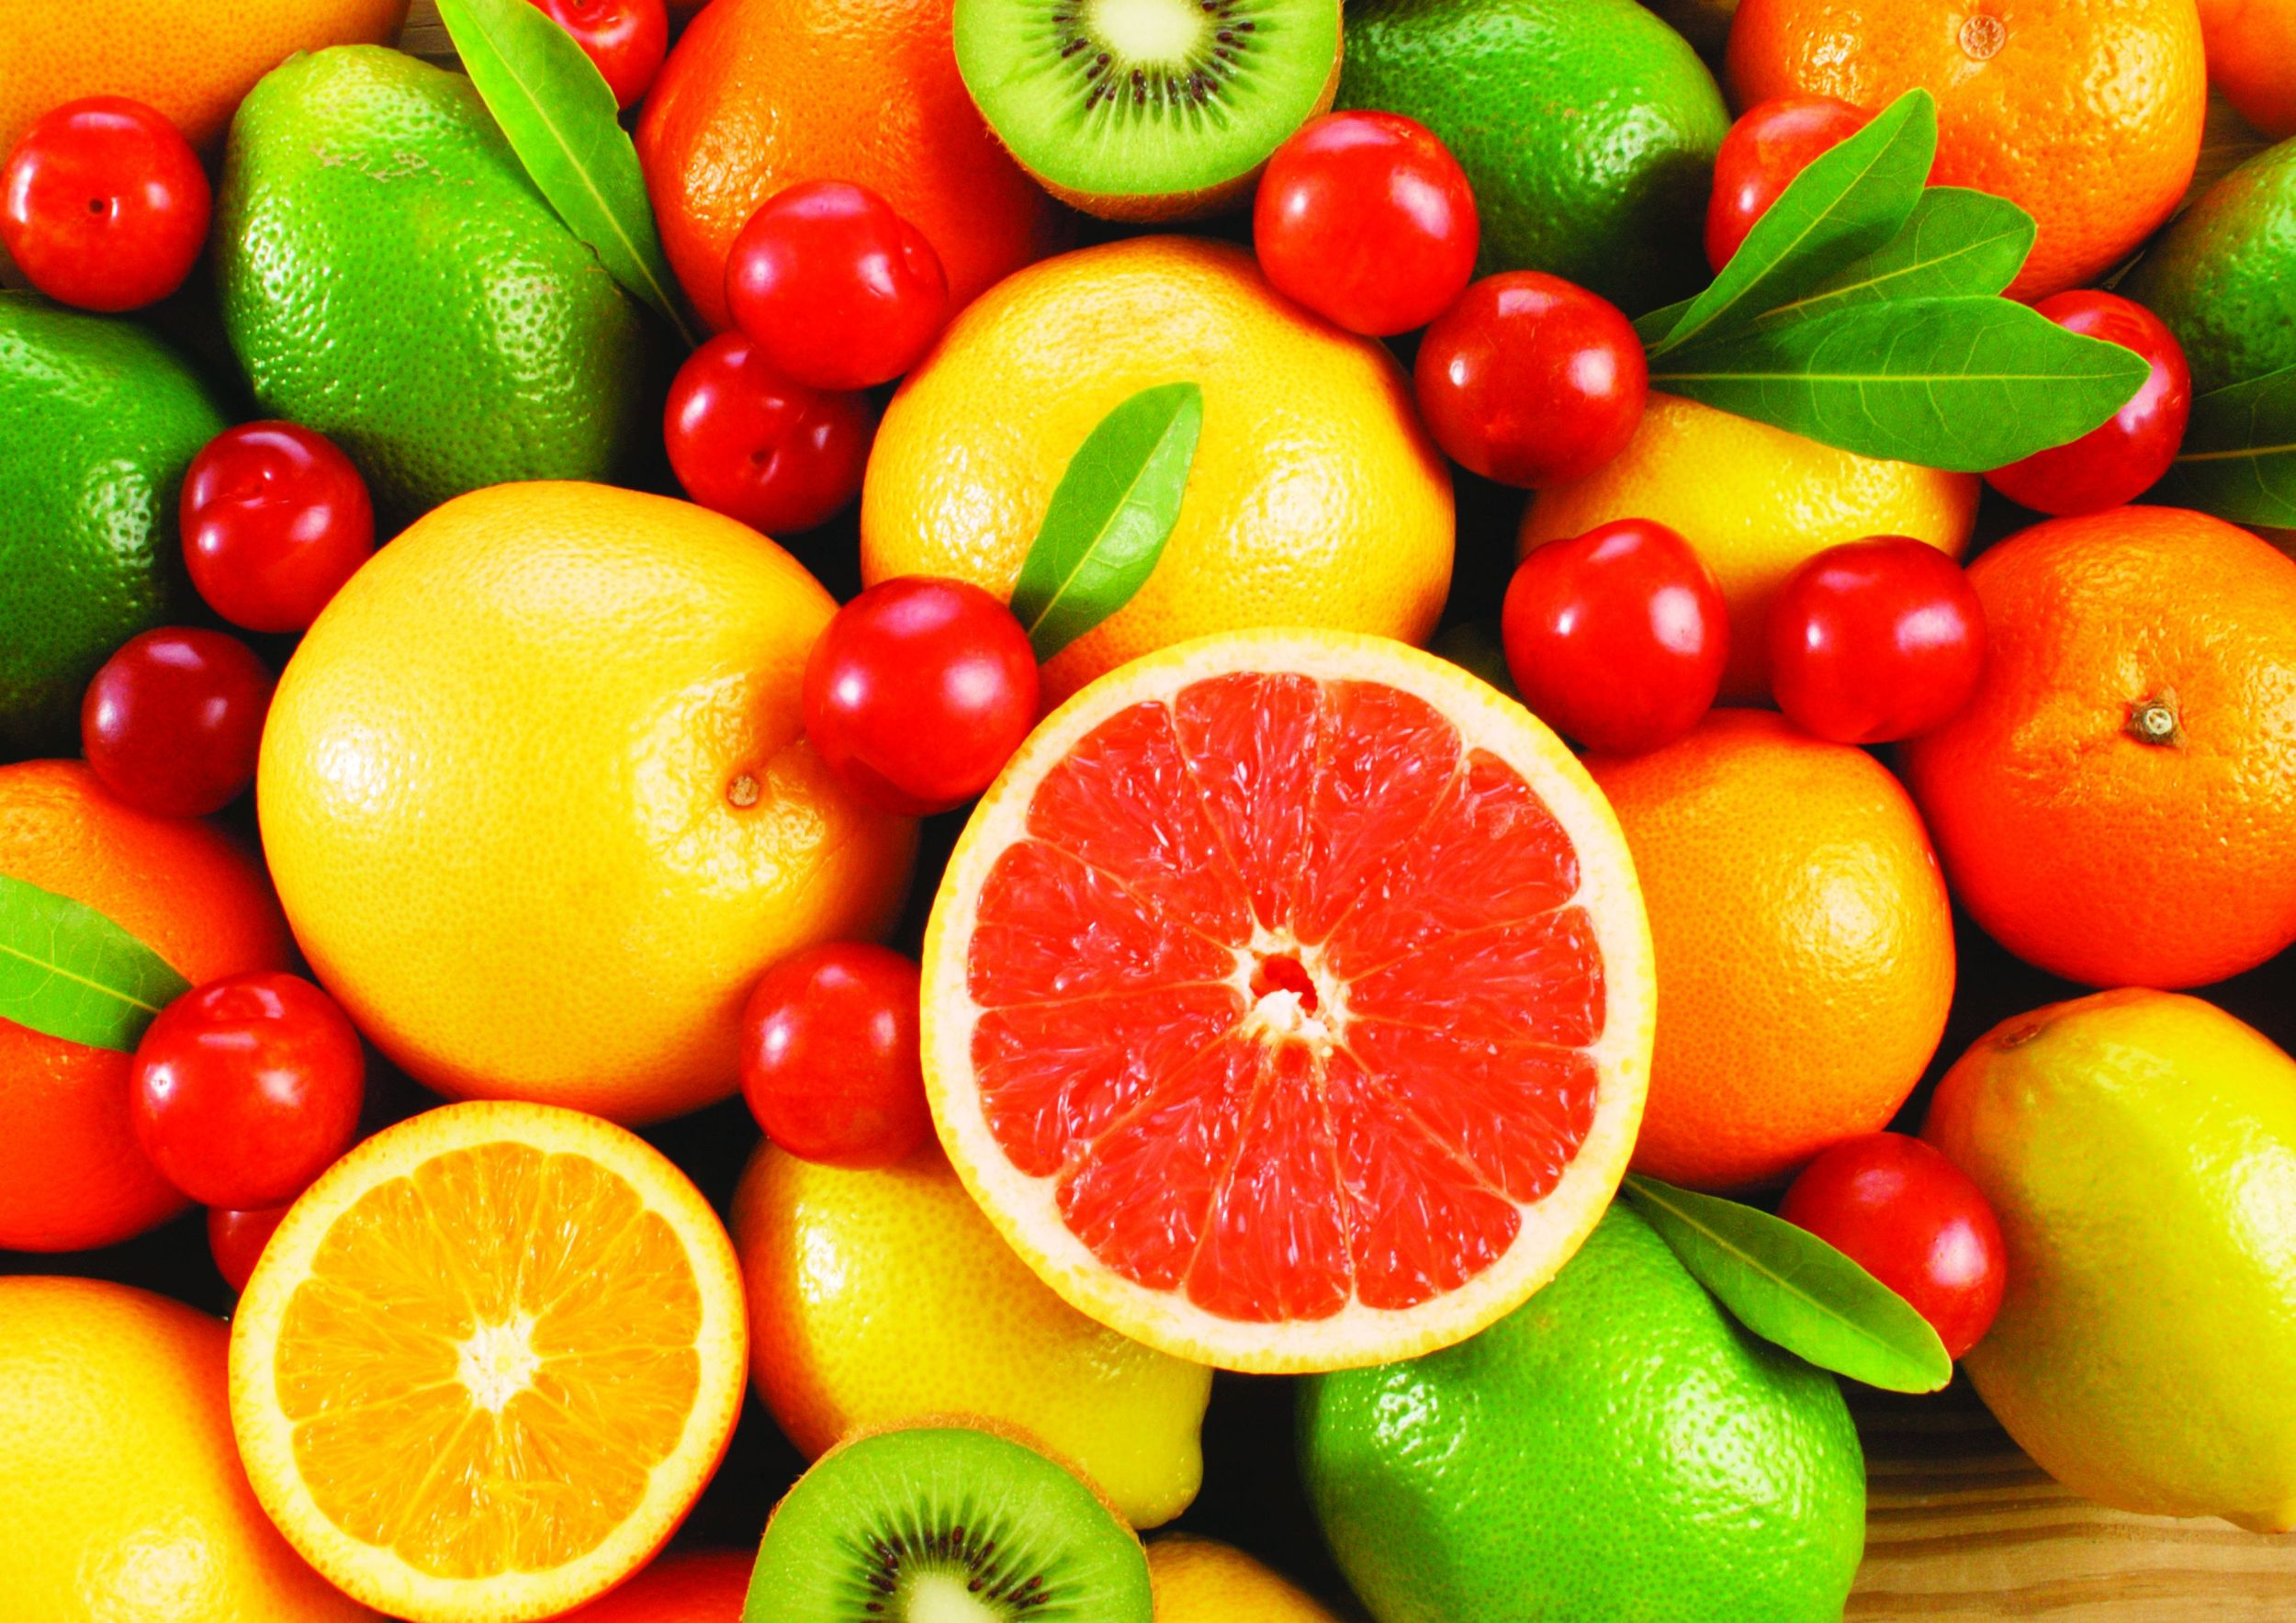 Fruits And Vegetables Wallpapers   2500x1767   617064 2500x1767